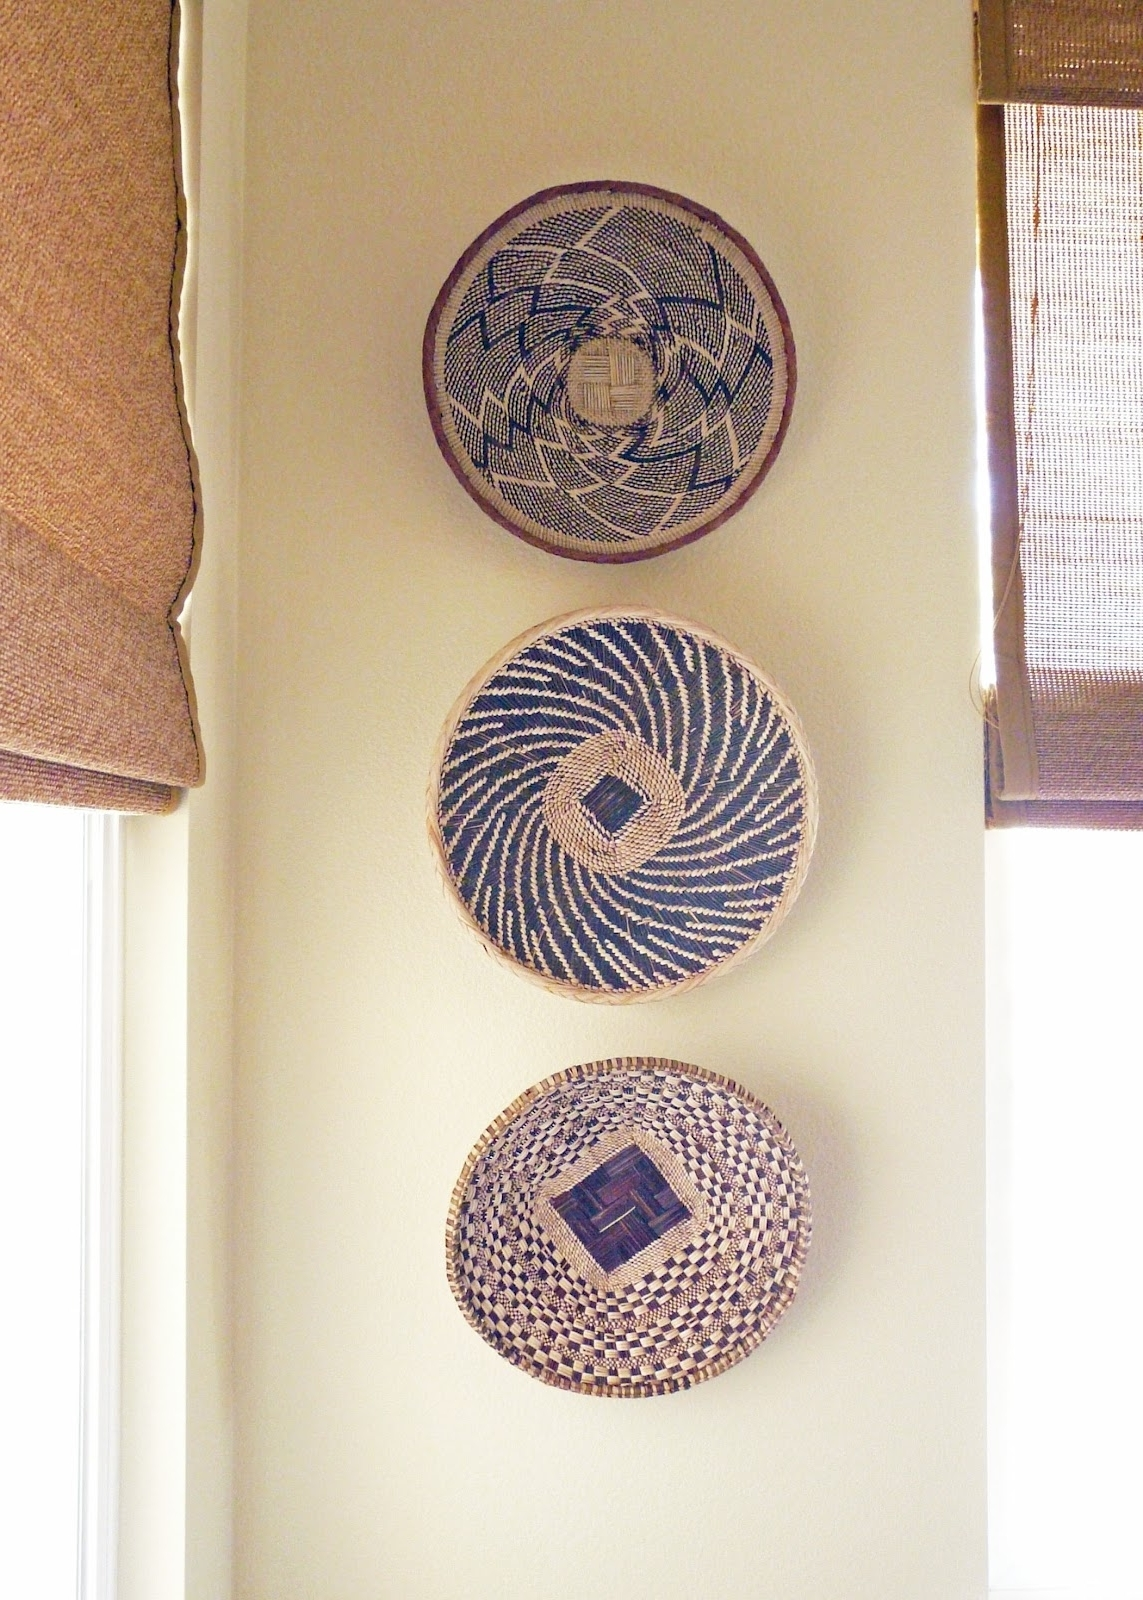 [%Home] African Basket Wall Decor In Well Known African Wall Art|African Wall Art Inside Newest Home] African Basket Wall Decor|Current African Wall Art With Home] African Basket Wall Decor|Most Popular Home] African Basket Wall Decor With Regard To African Wall Art%] (View 1 of 15)